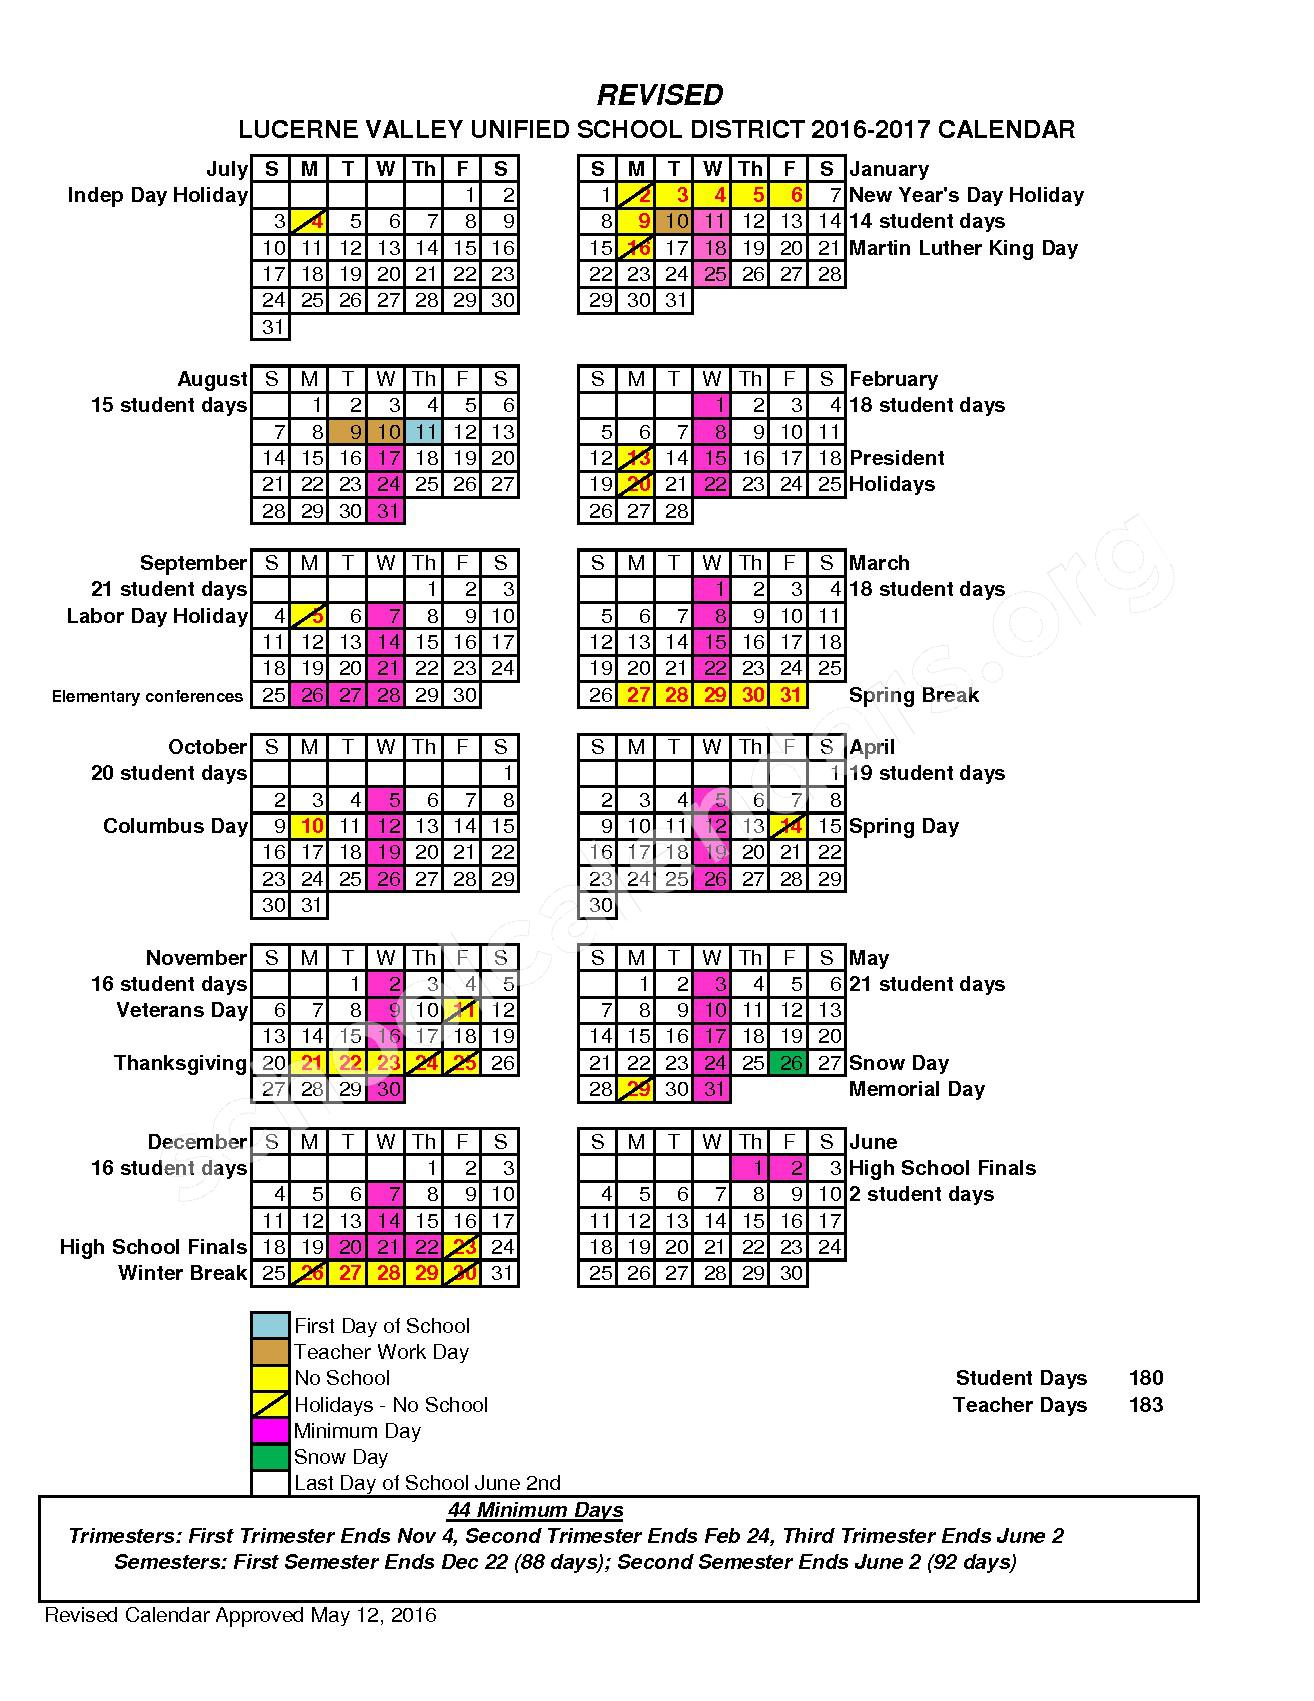 2016 - 2017 District Calendar – Lucerne Valley Unified School District – page 1